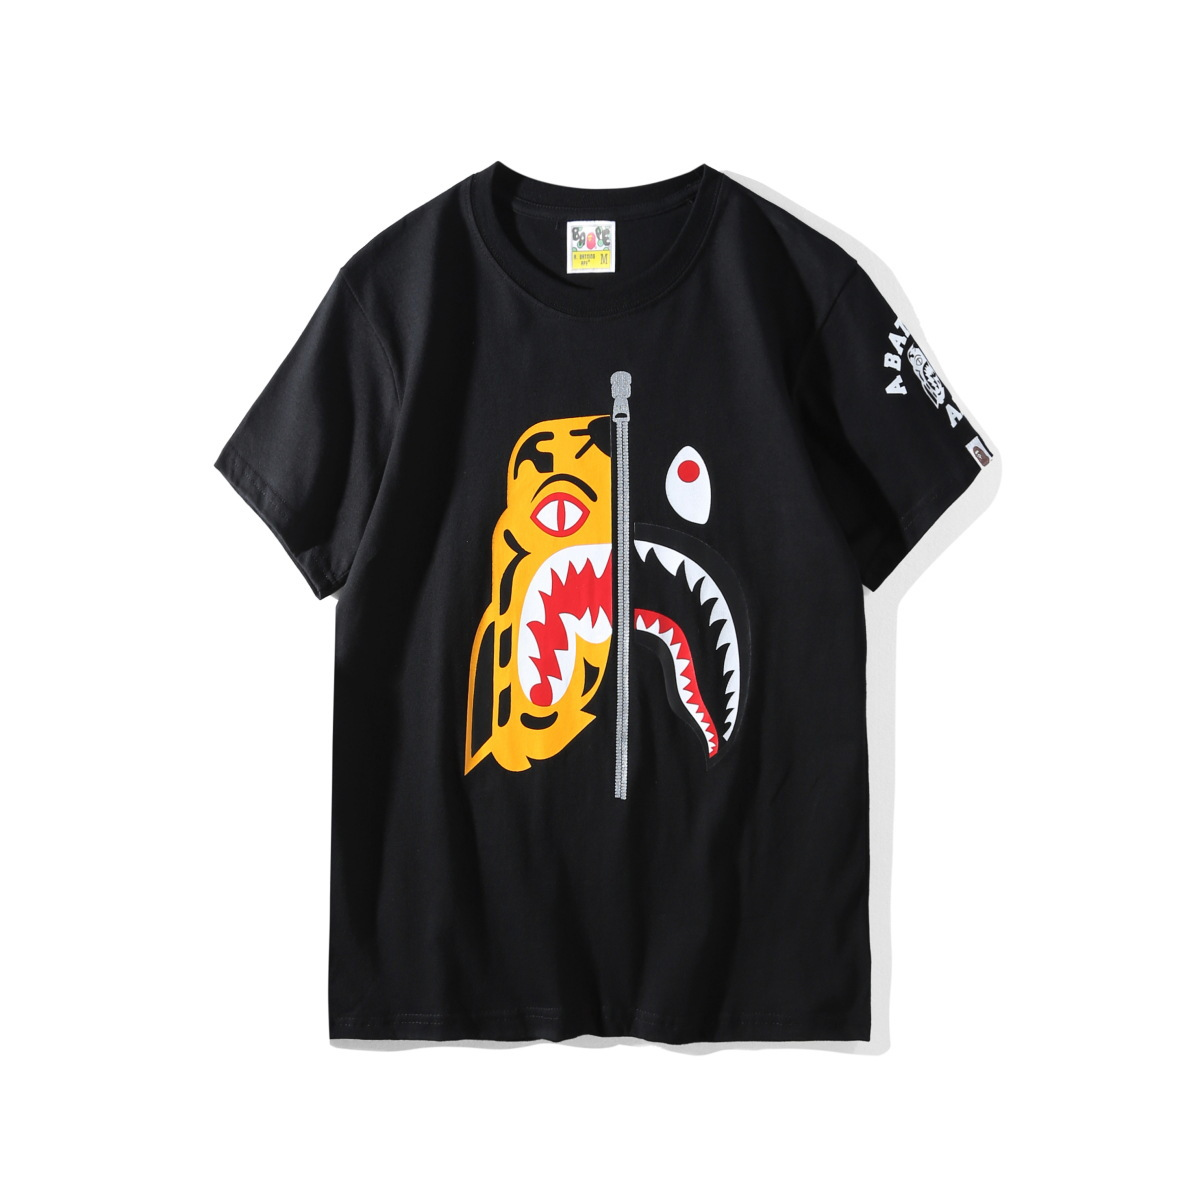 2019 New Arrival A Bathing Ape For Bape Short Casual O-neck Print Knitted Men&women T-shirts